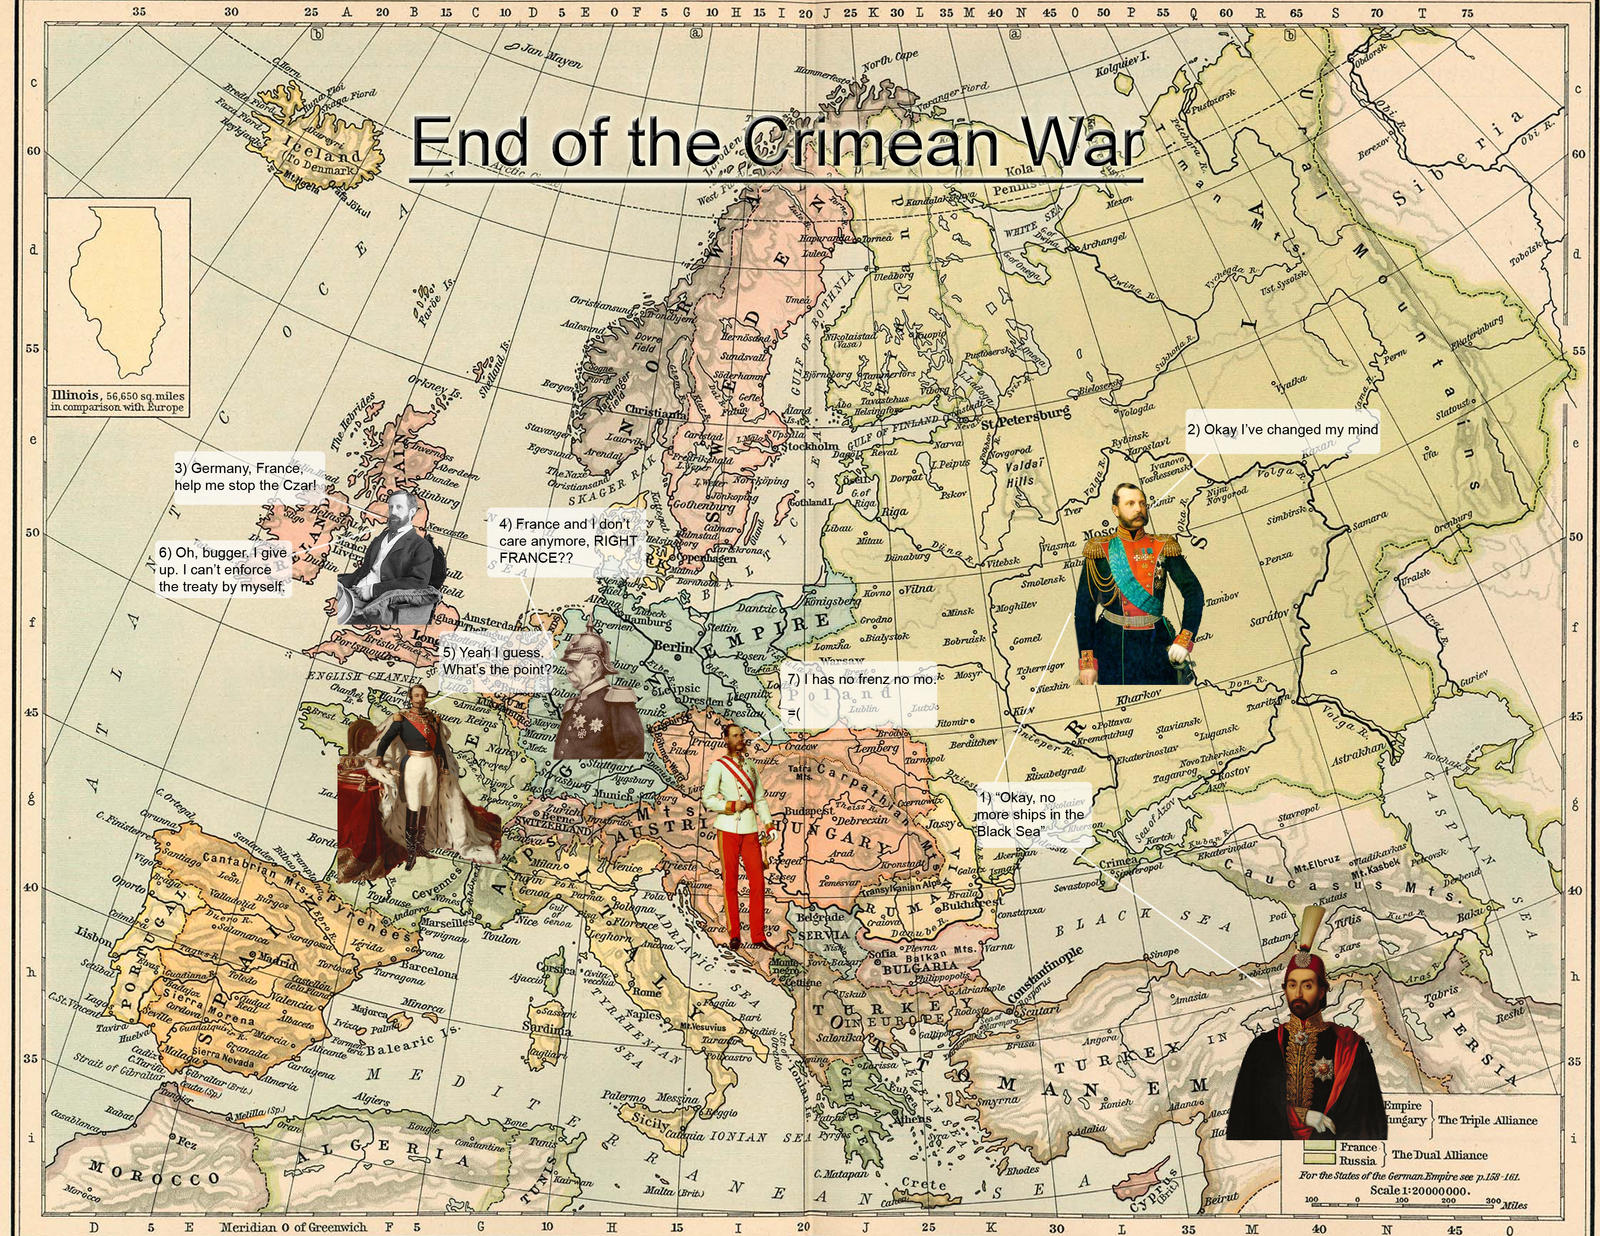 http://fc08.deviantart.net/fs71/i/2010/040/5/5/End_of_the_Crimean_War_by_WarlockNJsl.jpg